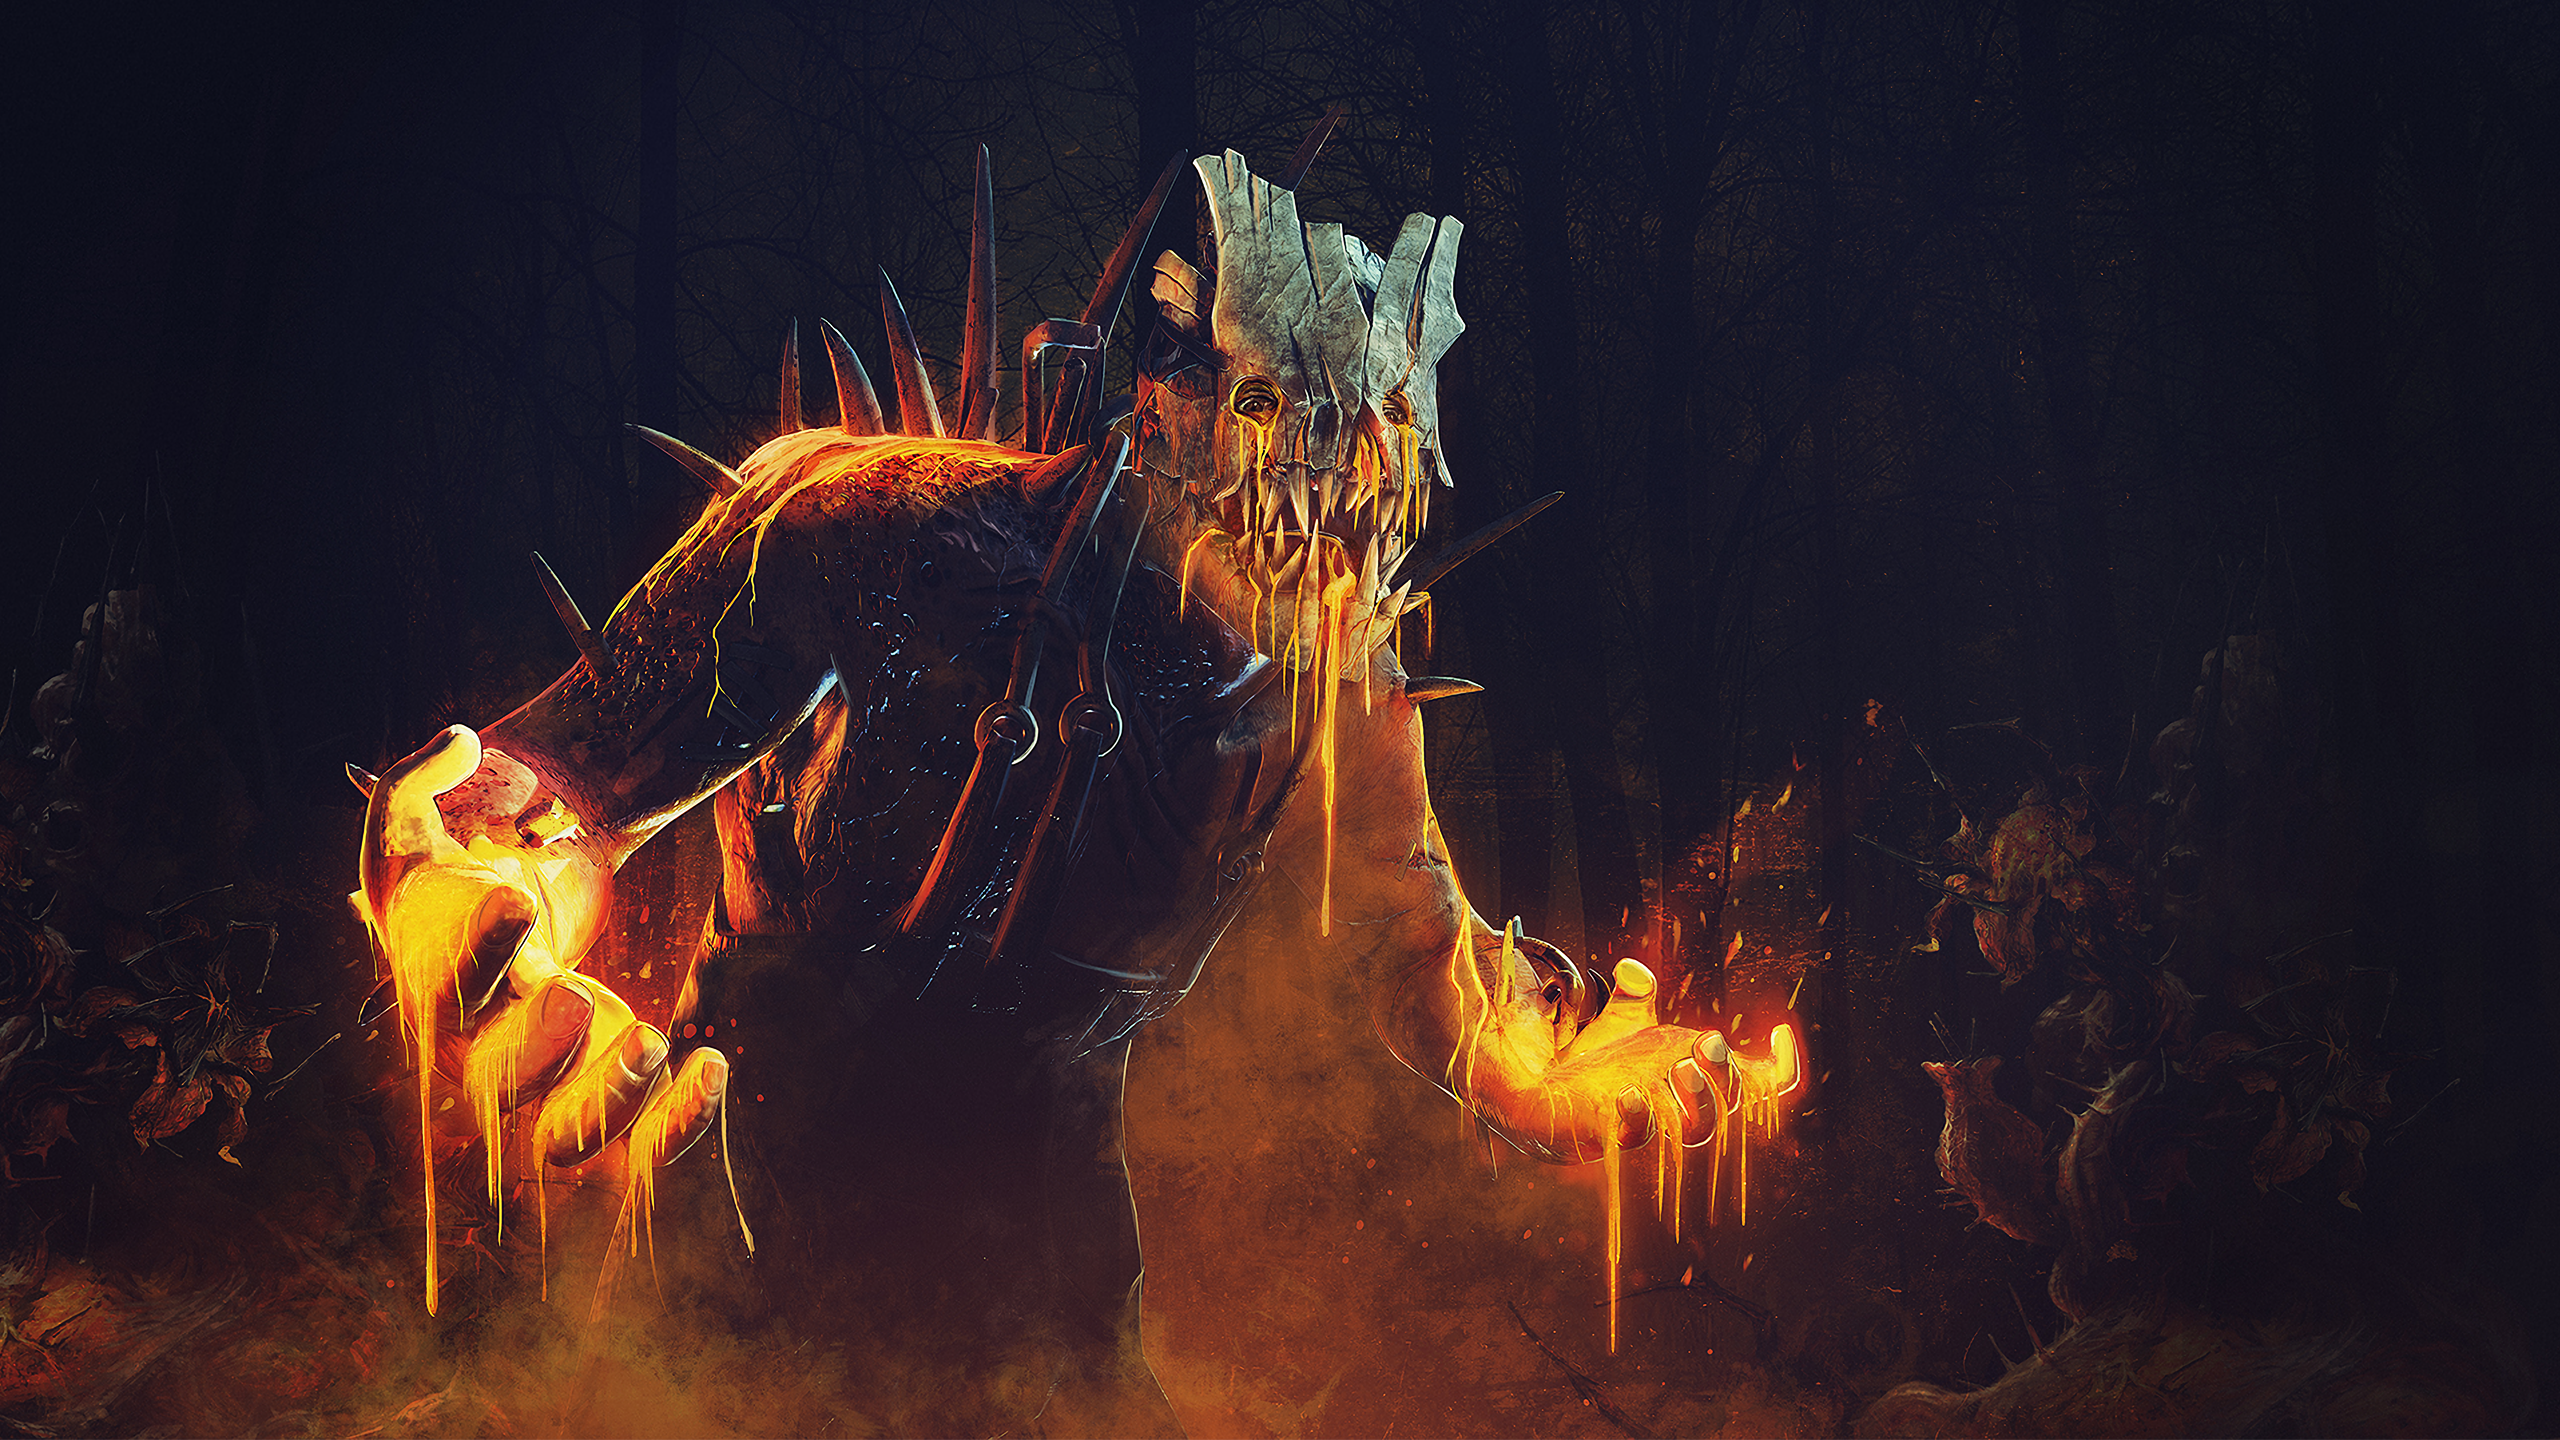 Dead By Daylight Hd Wallpaper Background Image 2560x1440 Id